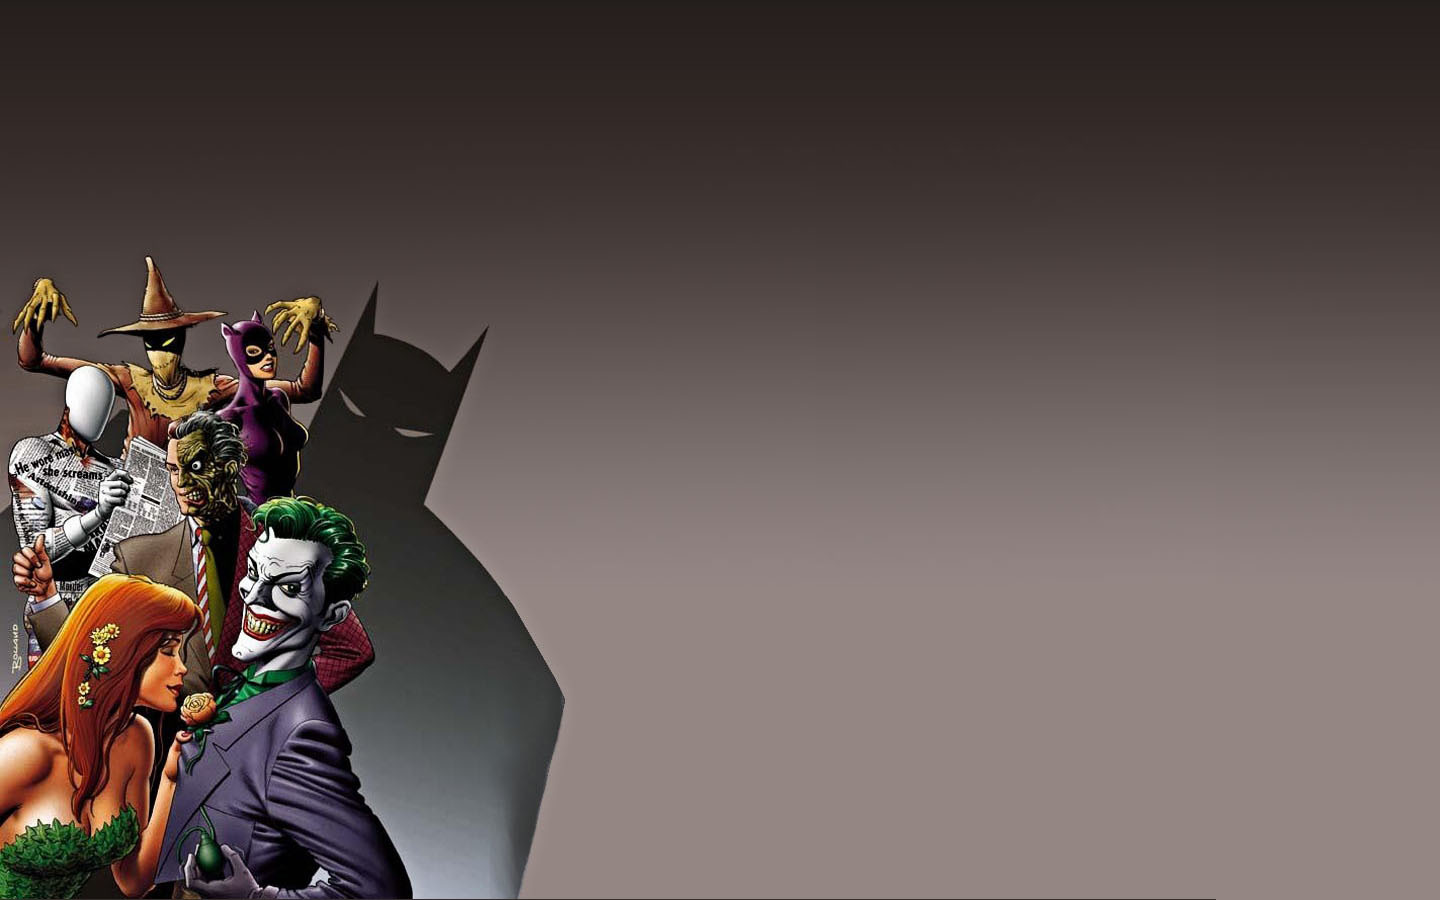 dc comics The joker HD Wallpaper